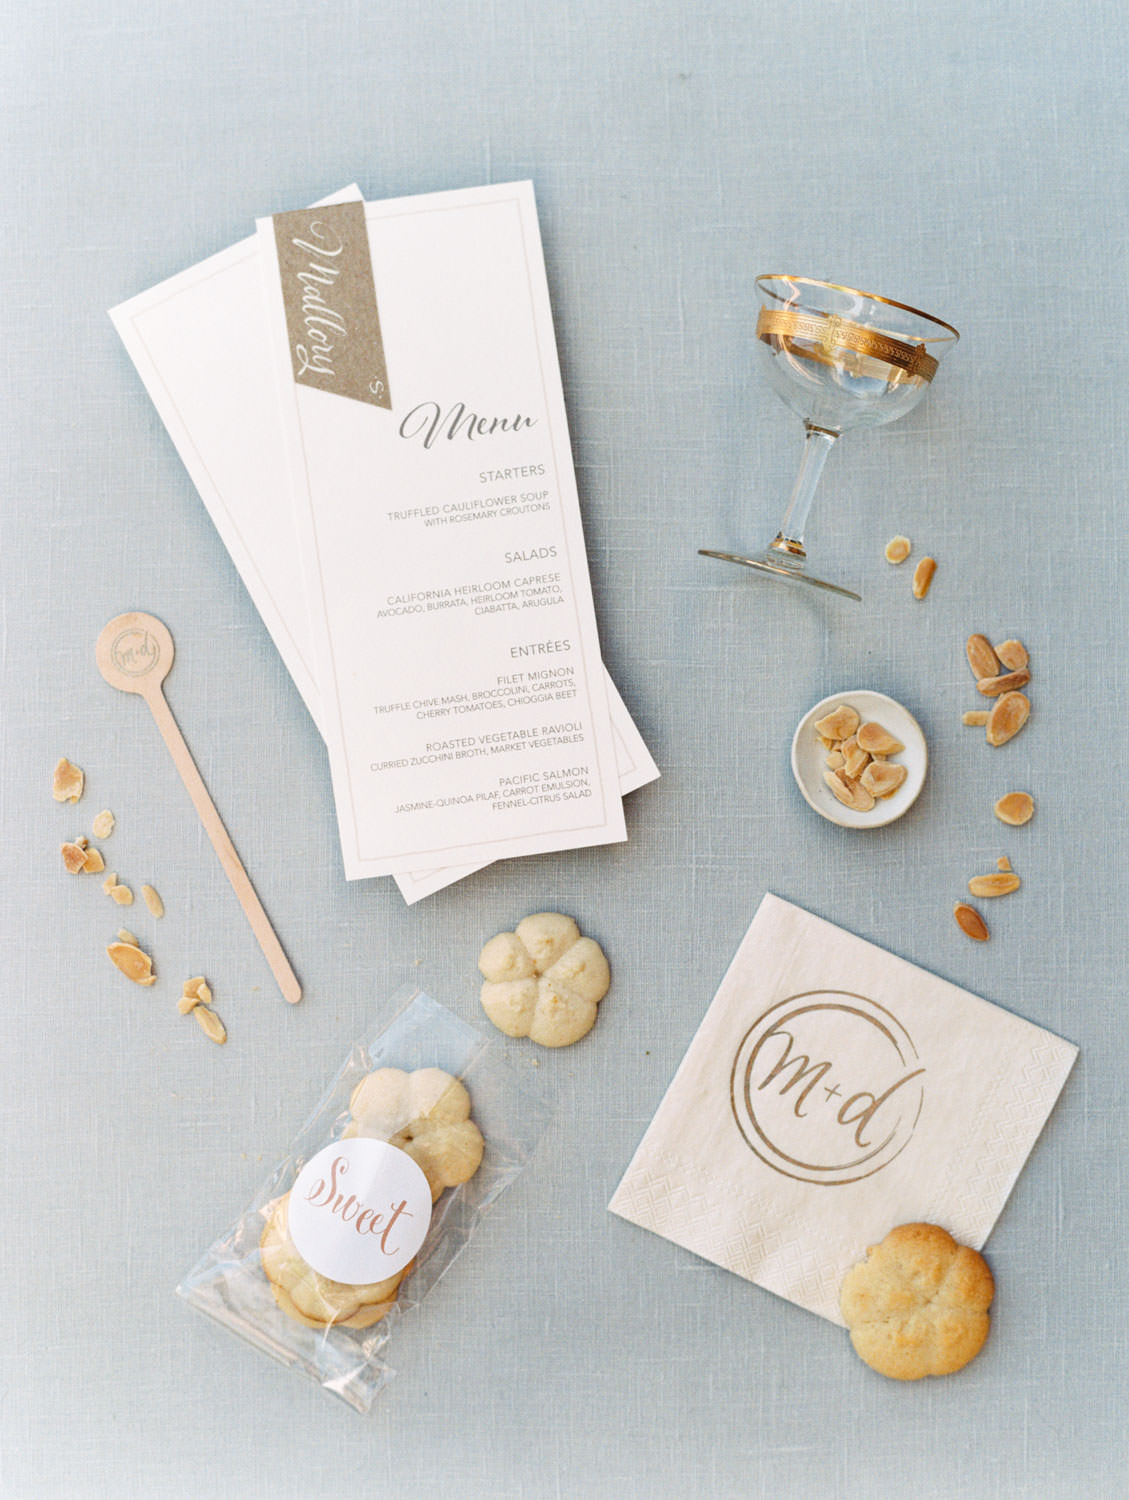 Ivory menu styled with wedding cookies, stir sticks, and custom initial napkins. Estancia La Jolla wedding shot on film by Cavin Elizabeth Photography